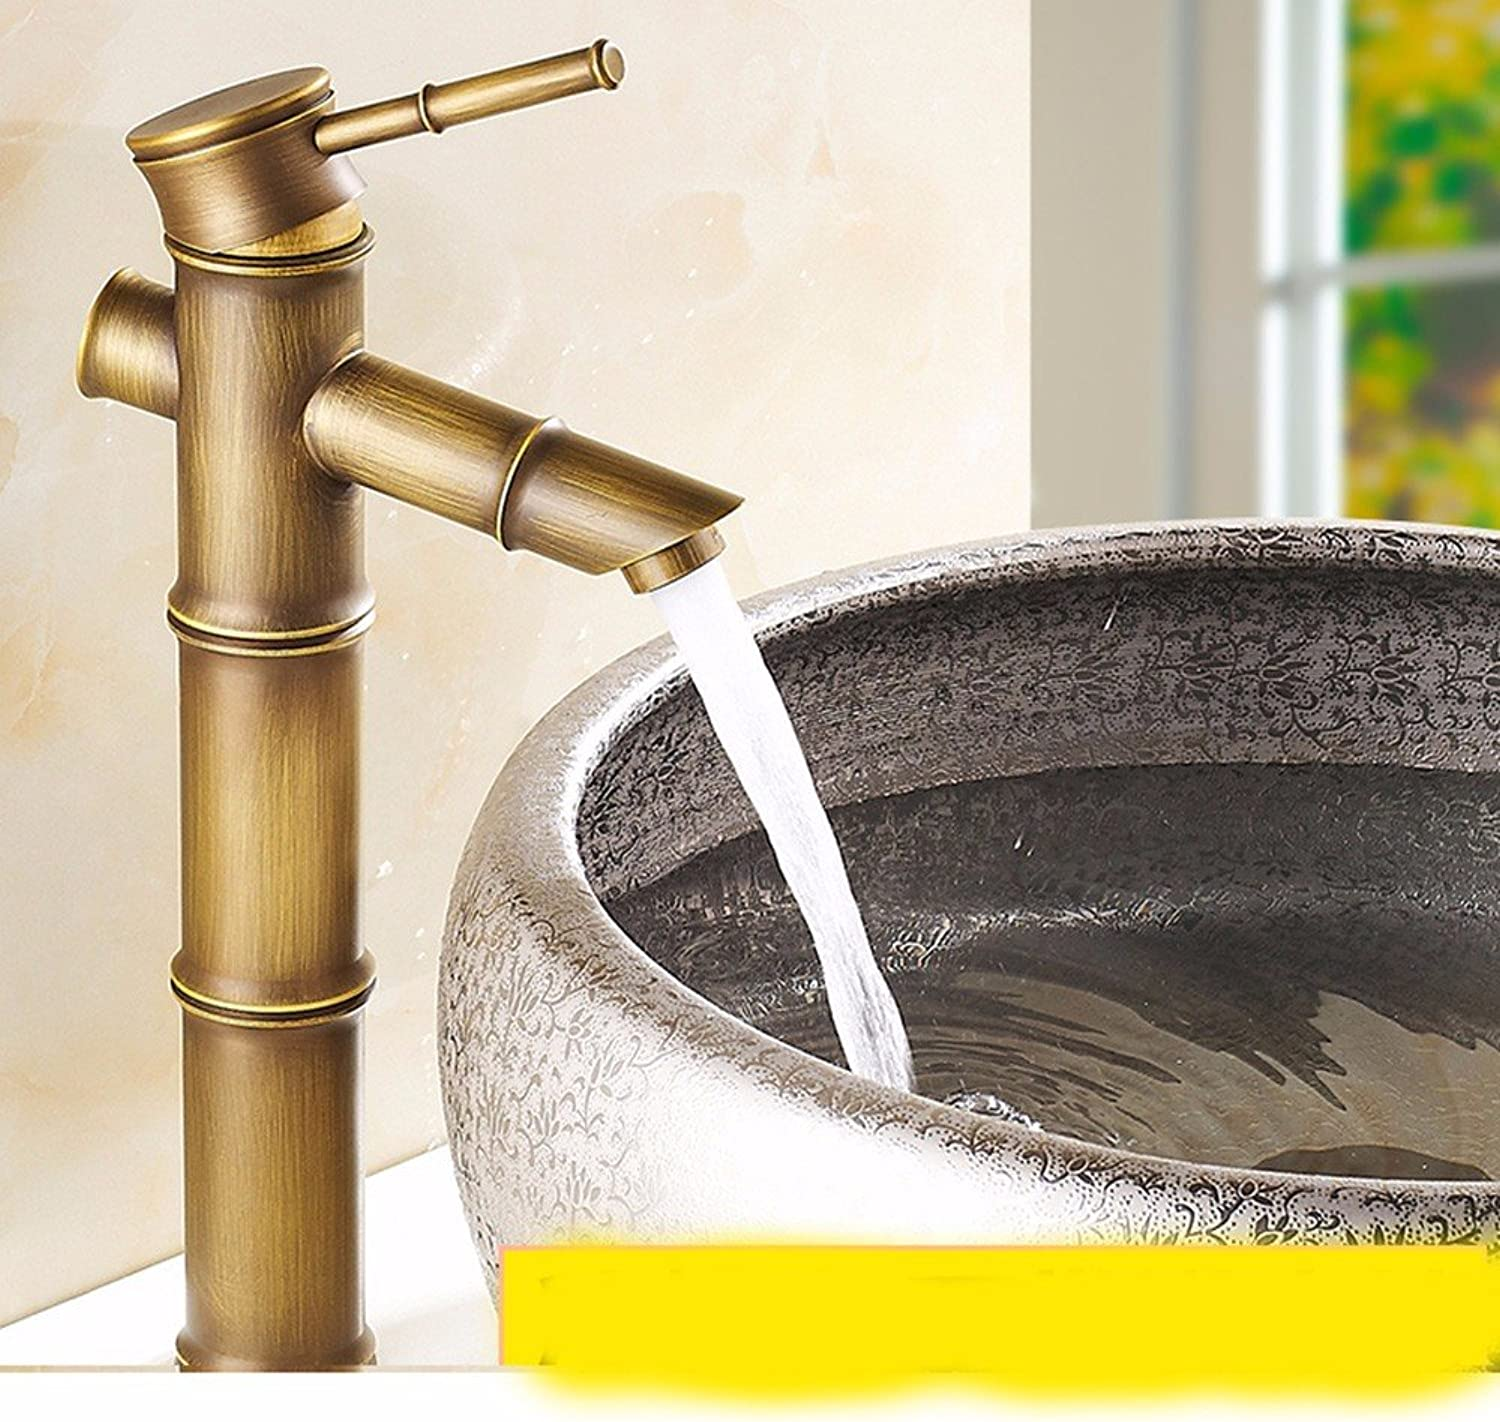 AWXJX European style retro style copper Hot and cold Wash your face Sink faucet